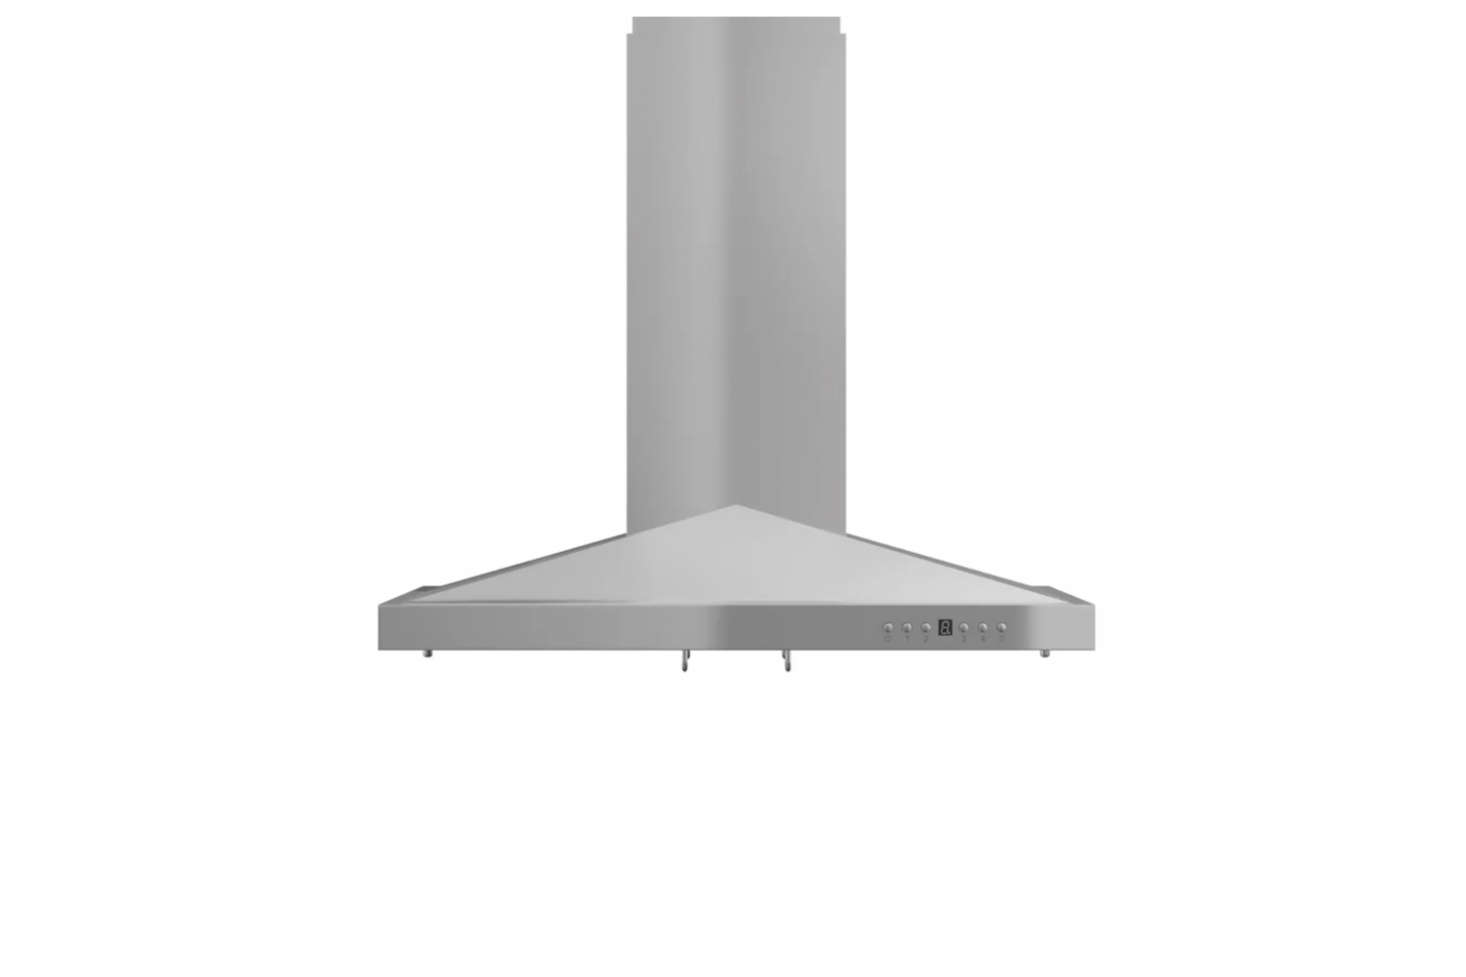 10 Easy Pieces Ceiling Mounted Kitchen Range Hoods